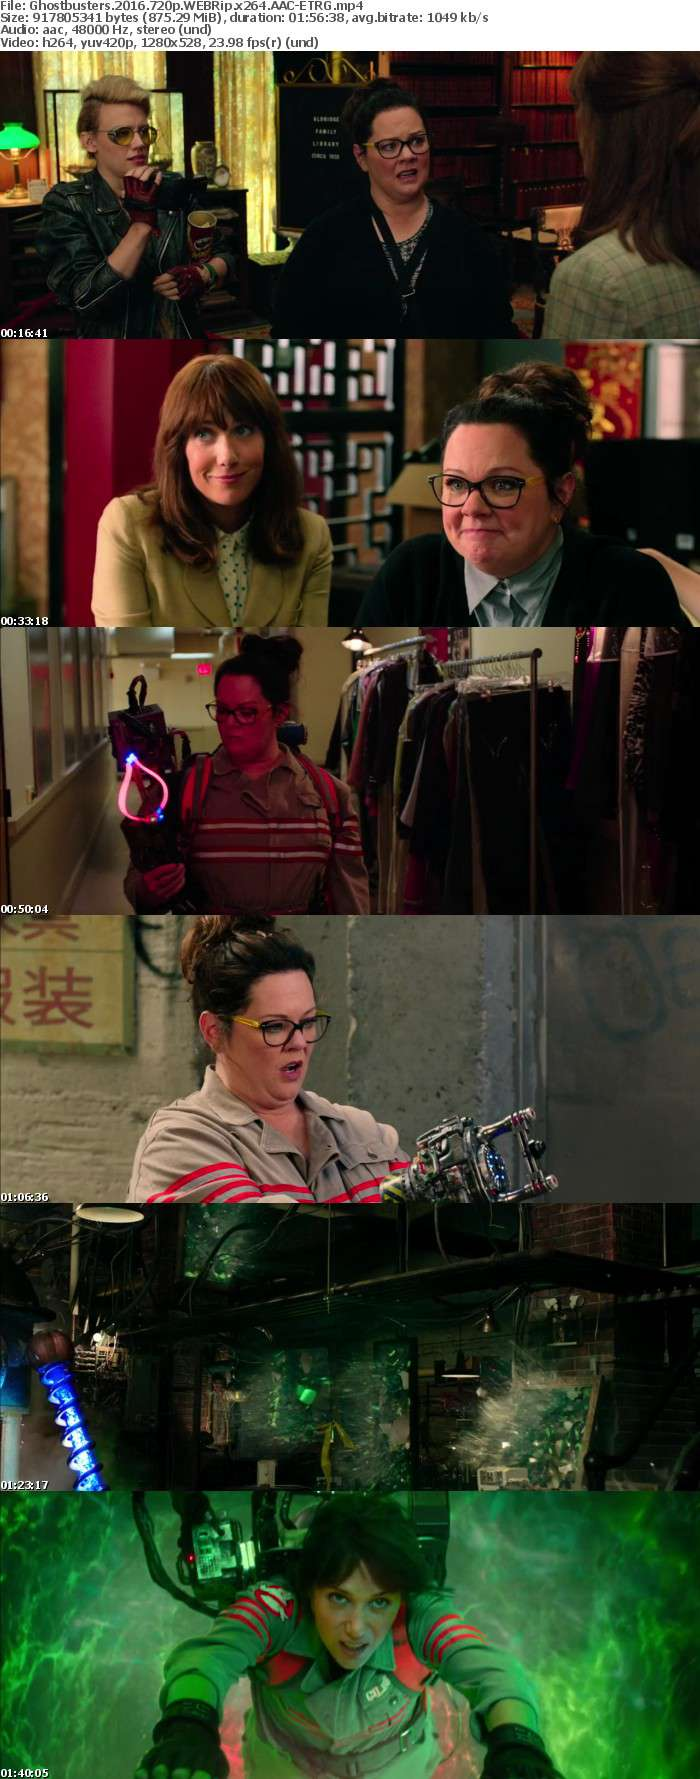 Ghostbusters 2016 720p WEBRip x264 AAC ETRG